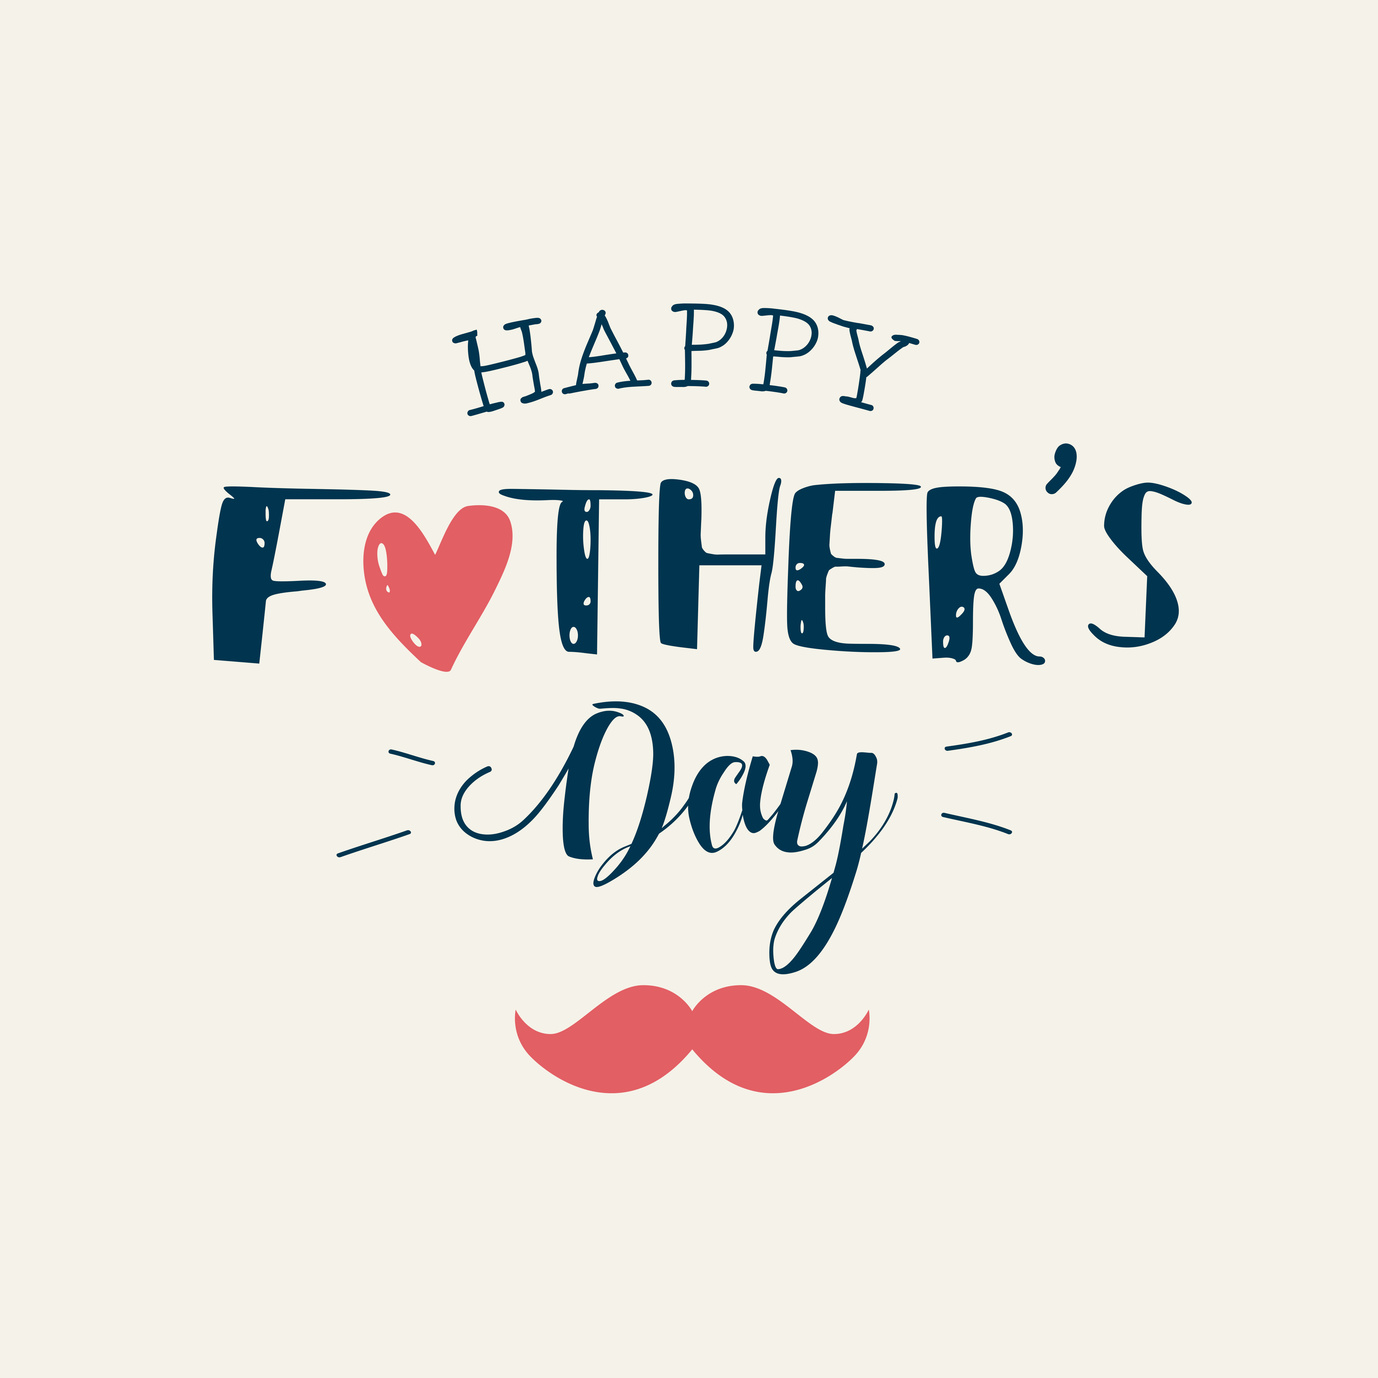 Happy fathers day card with icons heart and mustache. Editable vector design.